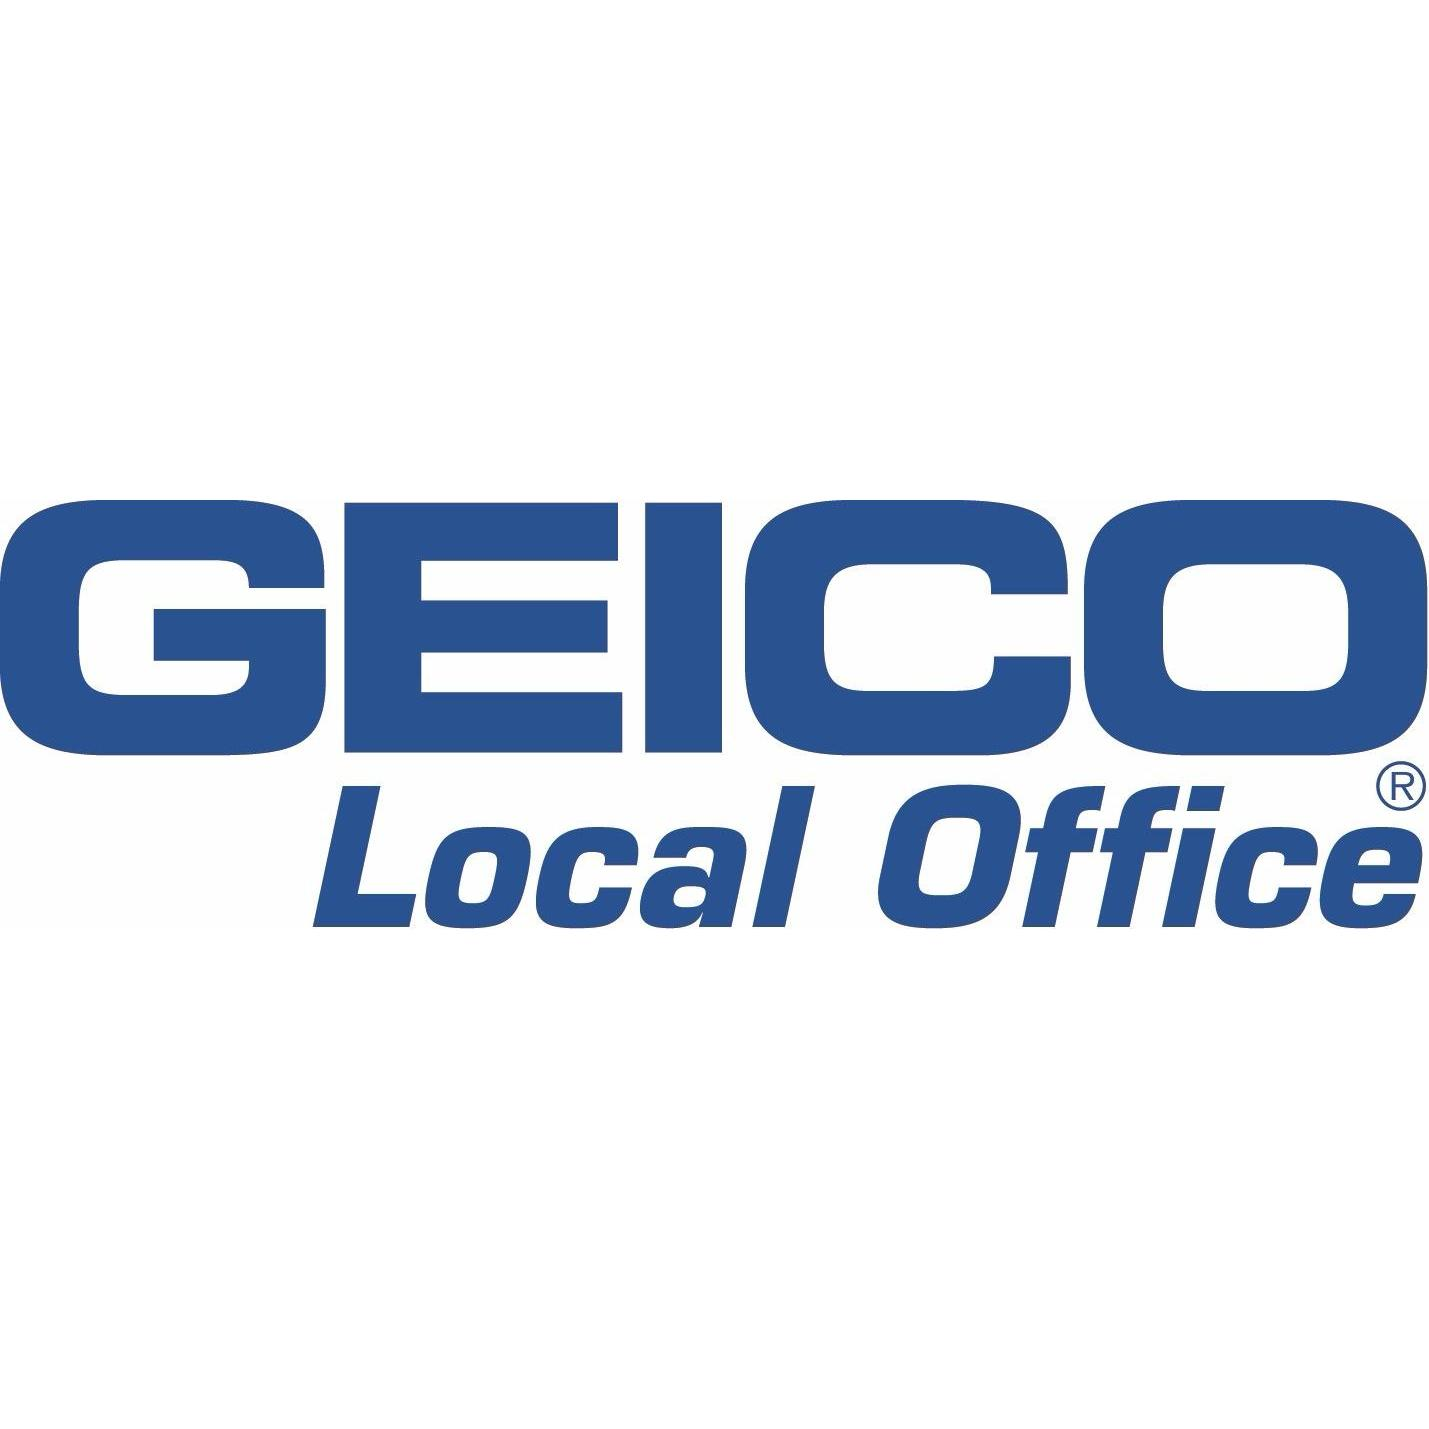 GEICO Insurance Agent - Panama City, FL 32404 - (850) 785-0538 | ShowMeLocal.com